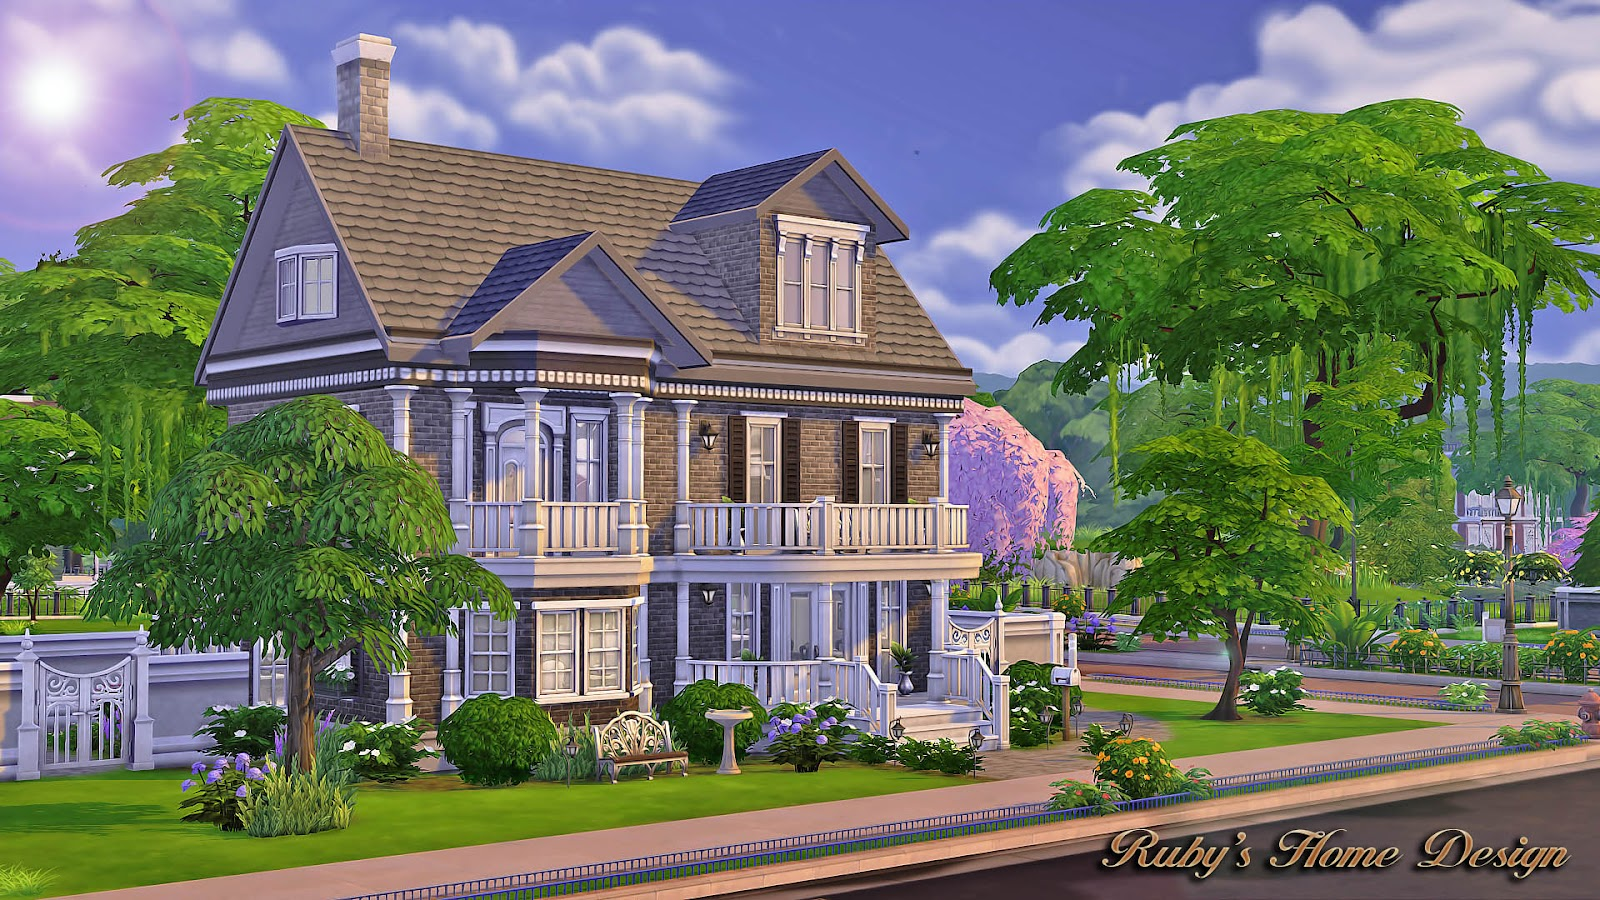 sims4 the chocolate house no cc. 09 17 14 2 41nbspamcopy zps8f23c88ajpg  sims4 the chocolate house